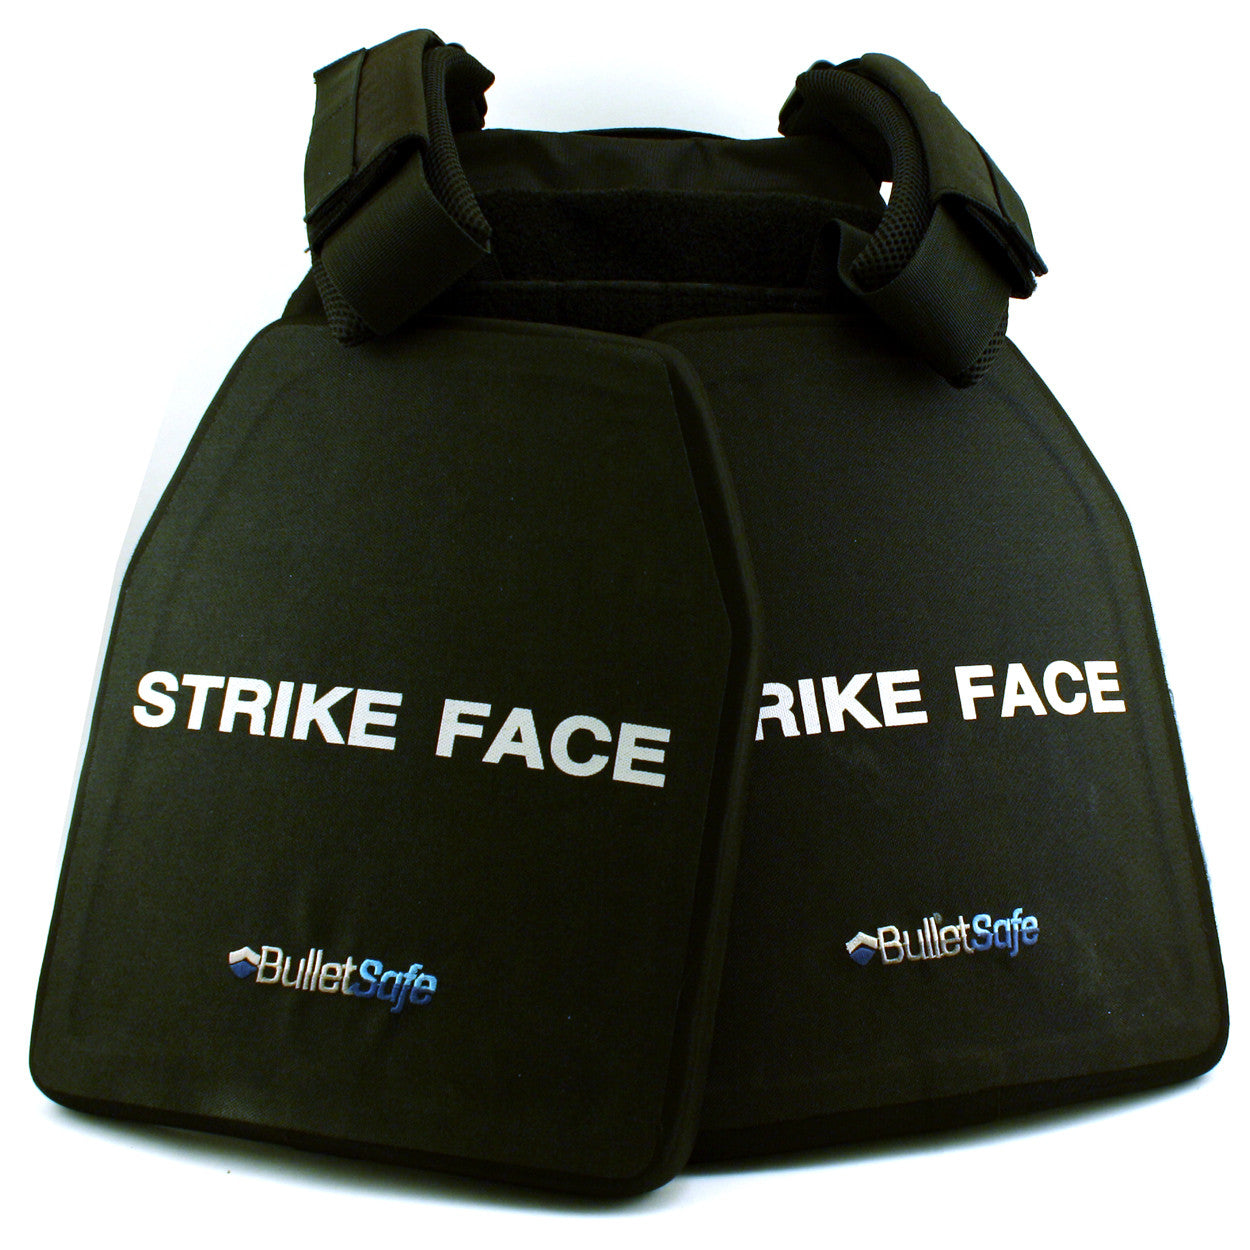 The BulletSafe Active Shooter Kit - 2 Plates and a Carrier - Will Ship May 30th